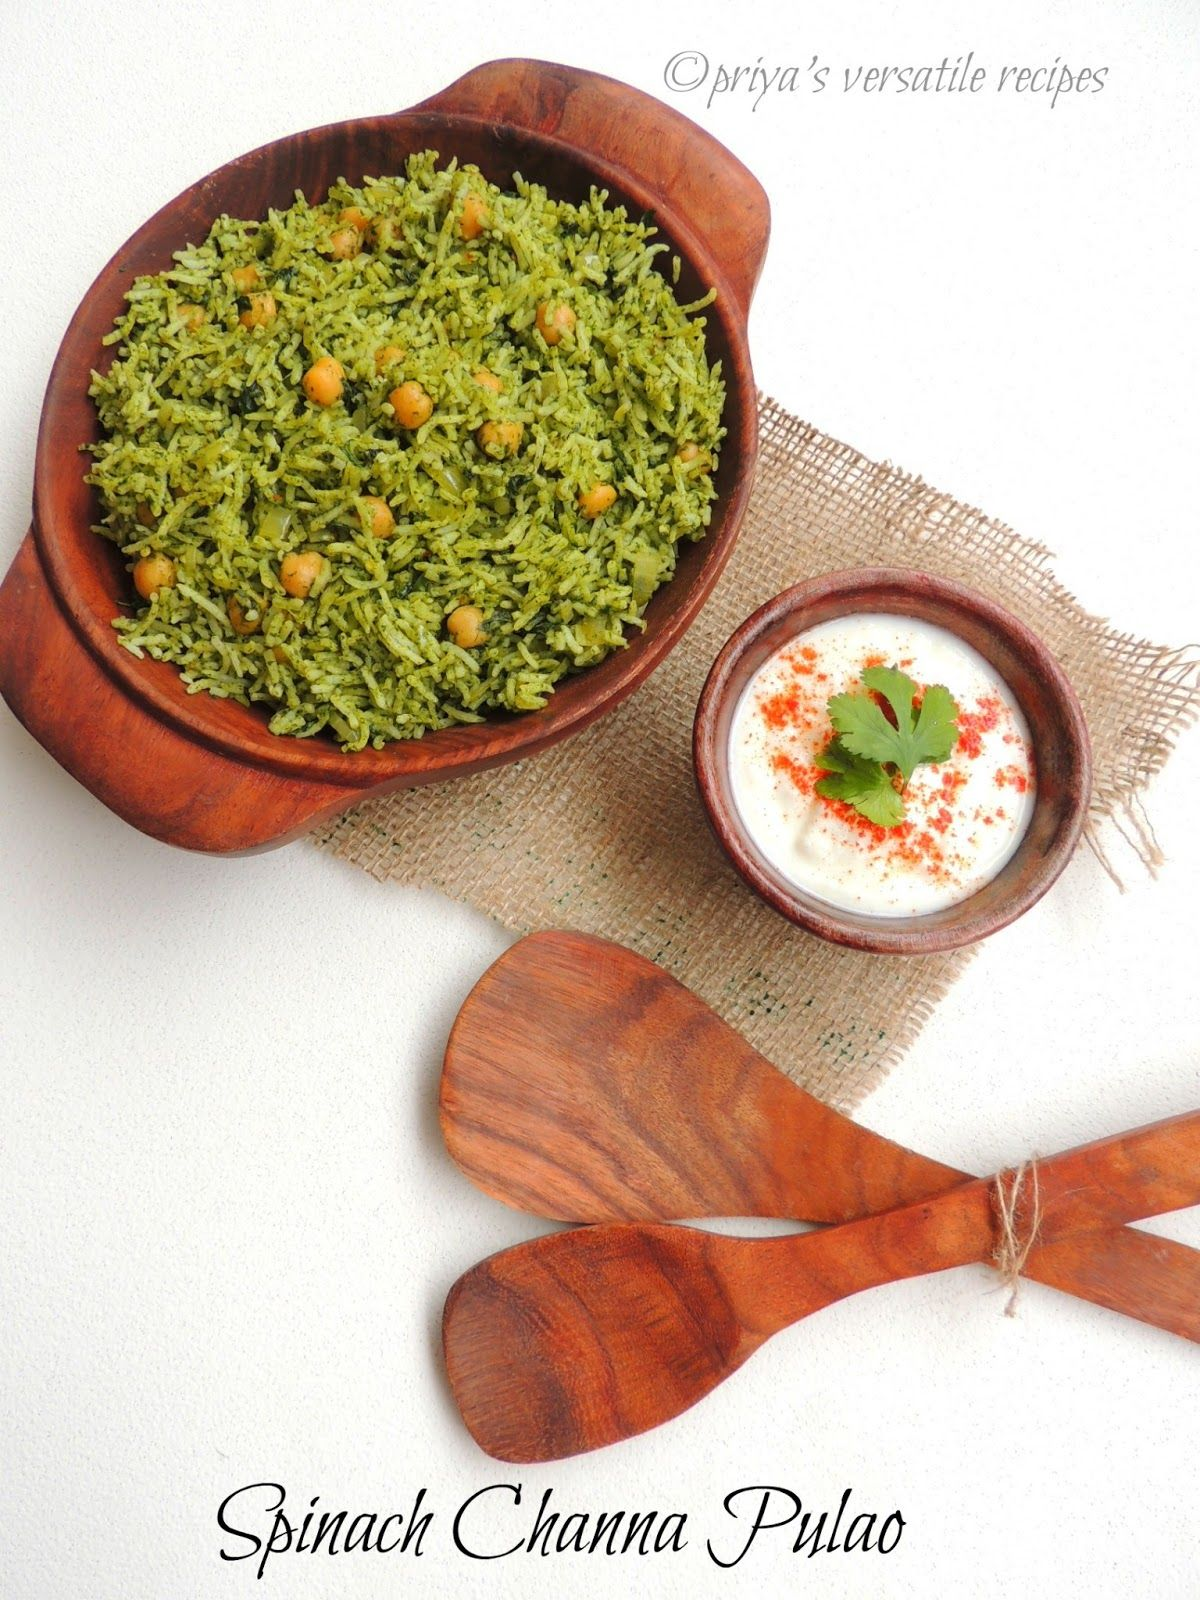 Priya's Versatile Recipes: Palak Channa Pulao/Spinach Chickpeas Pulao